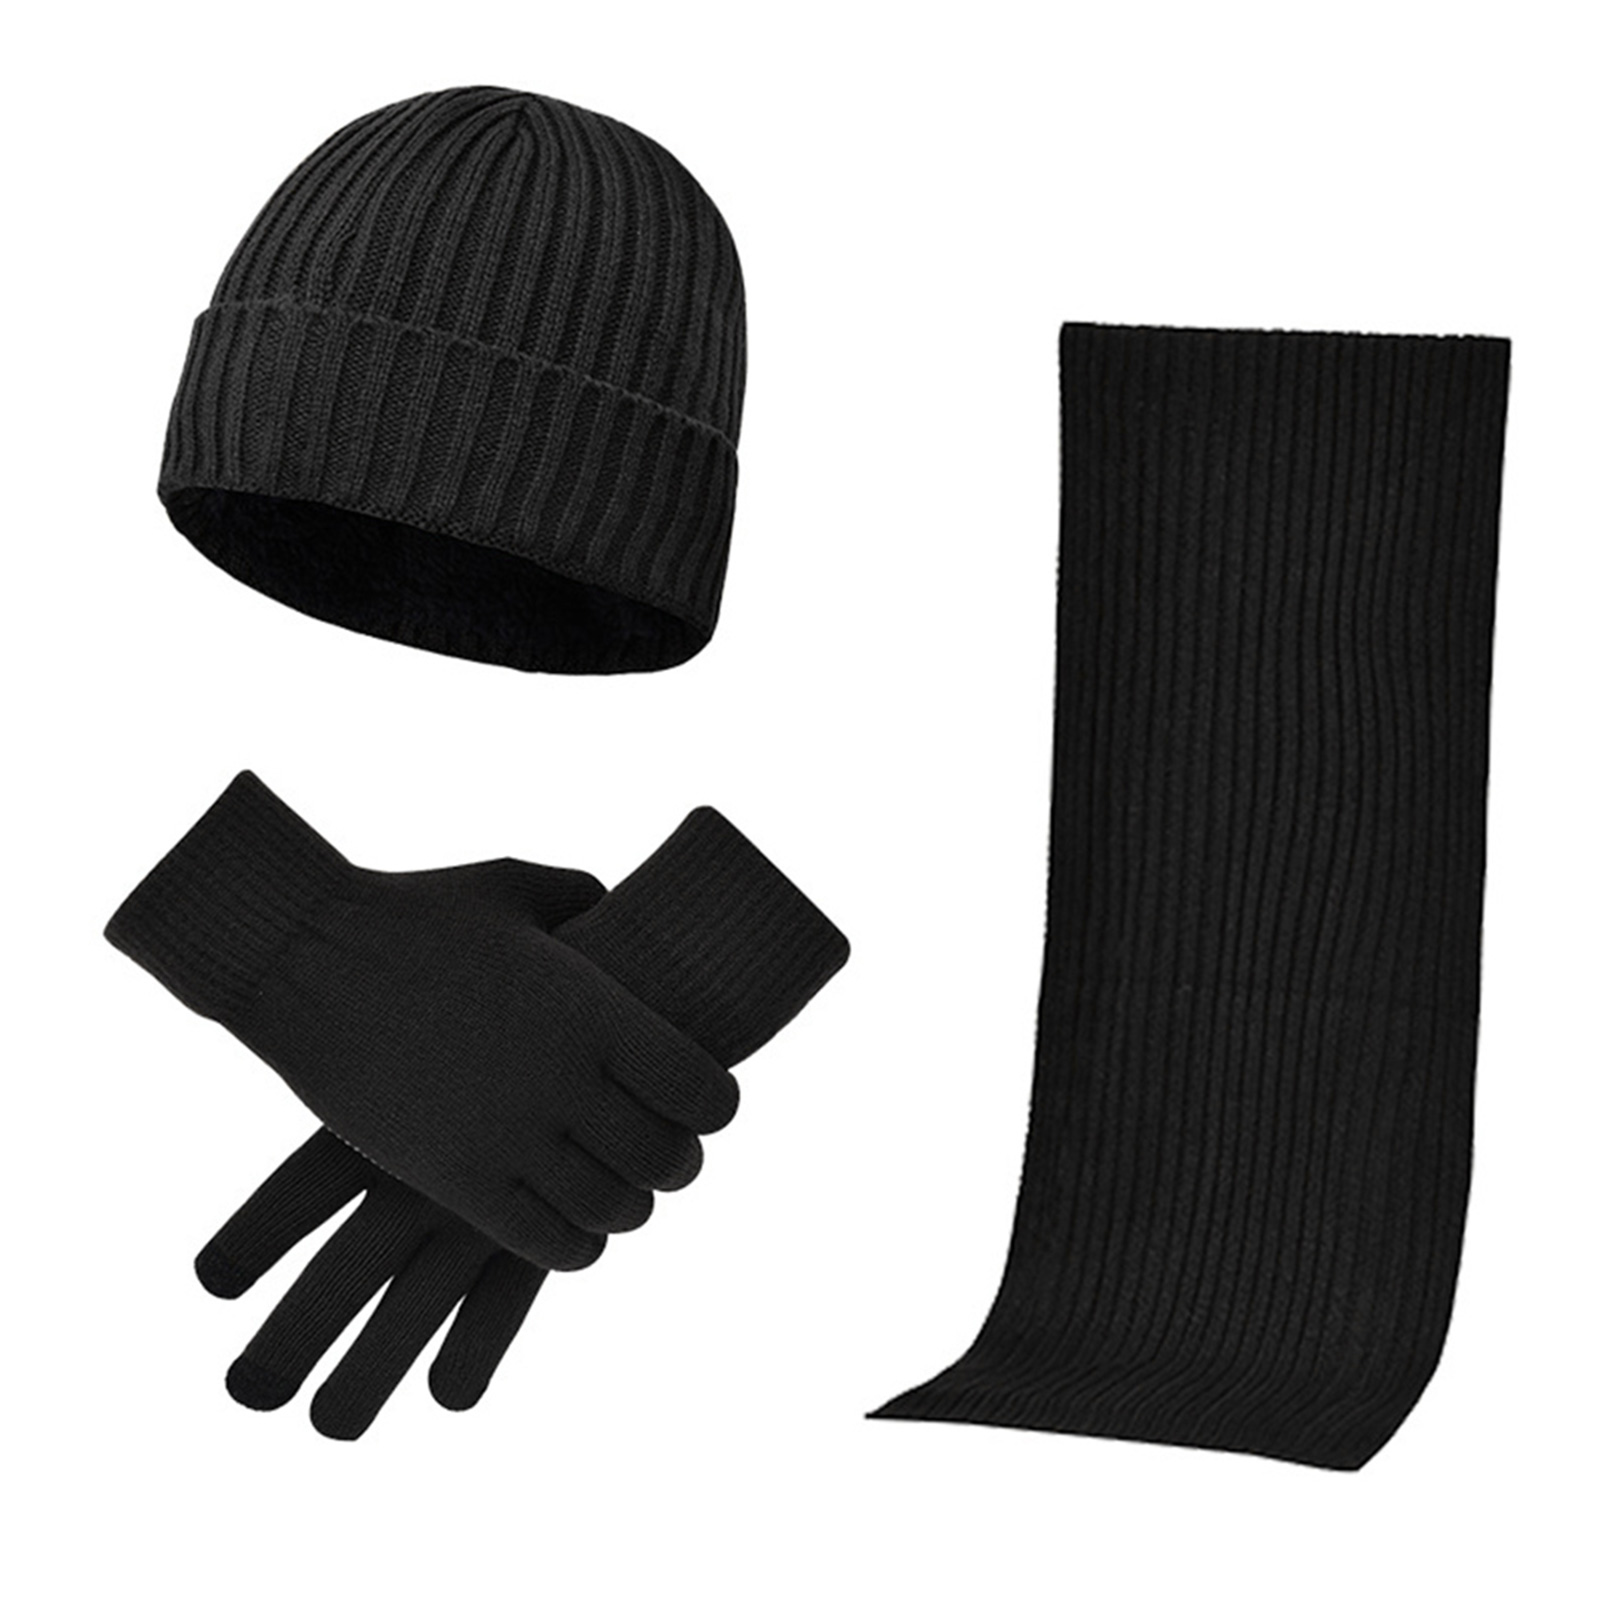 3pcs Women Men Outdoor Sports Gift Thermal Soft Cold Weather Warm Winter Hat Scarf Gloves Set Knitted Beanie Skiing Windproof